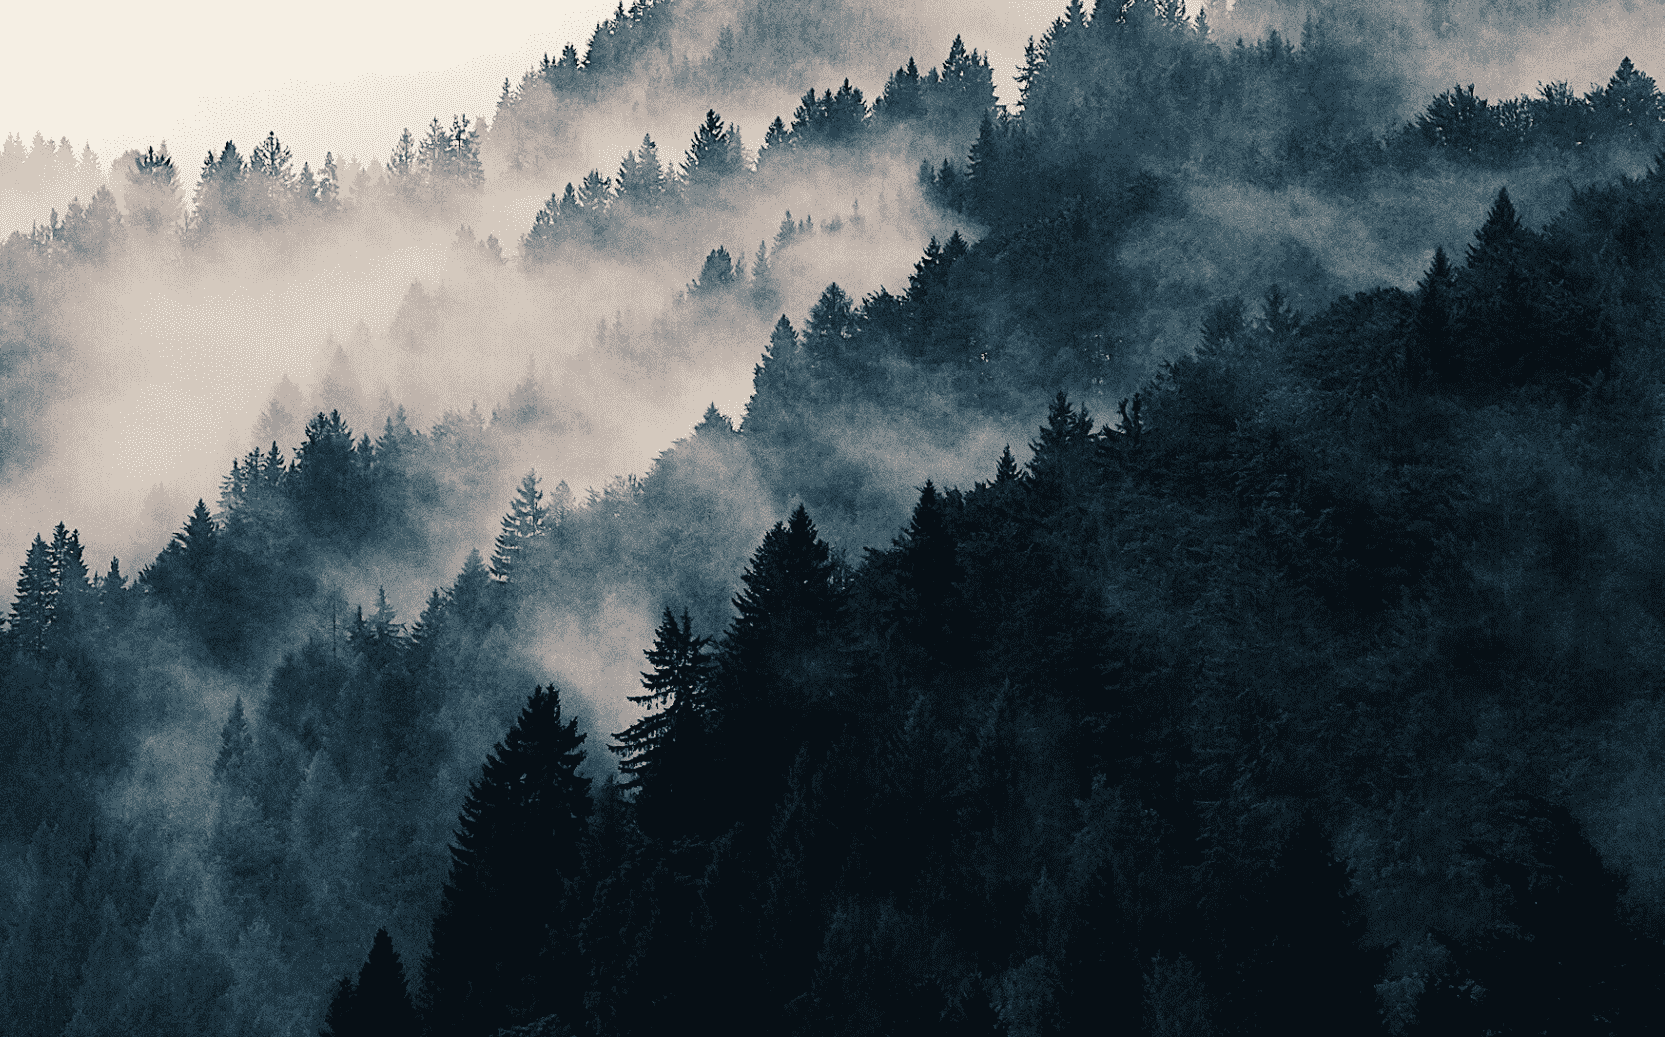 Background image of forest